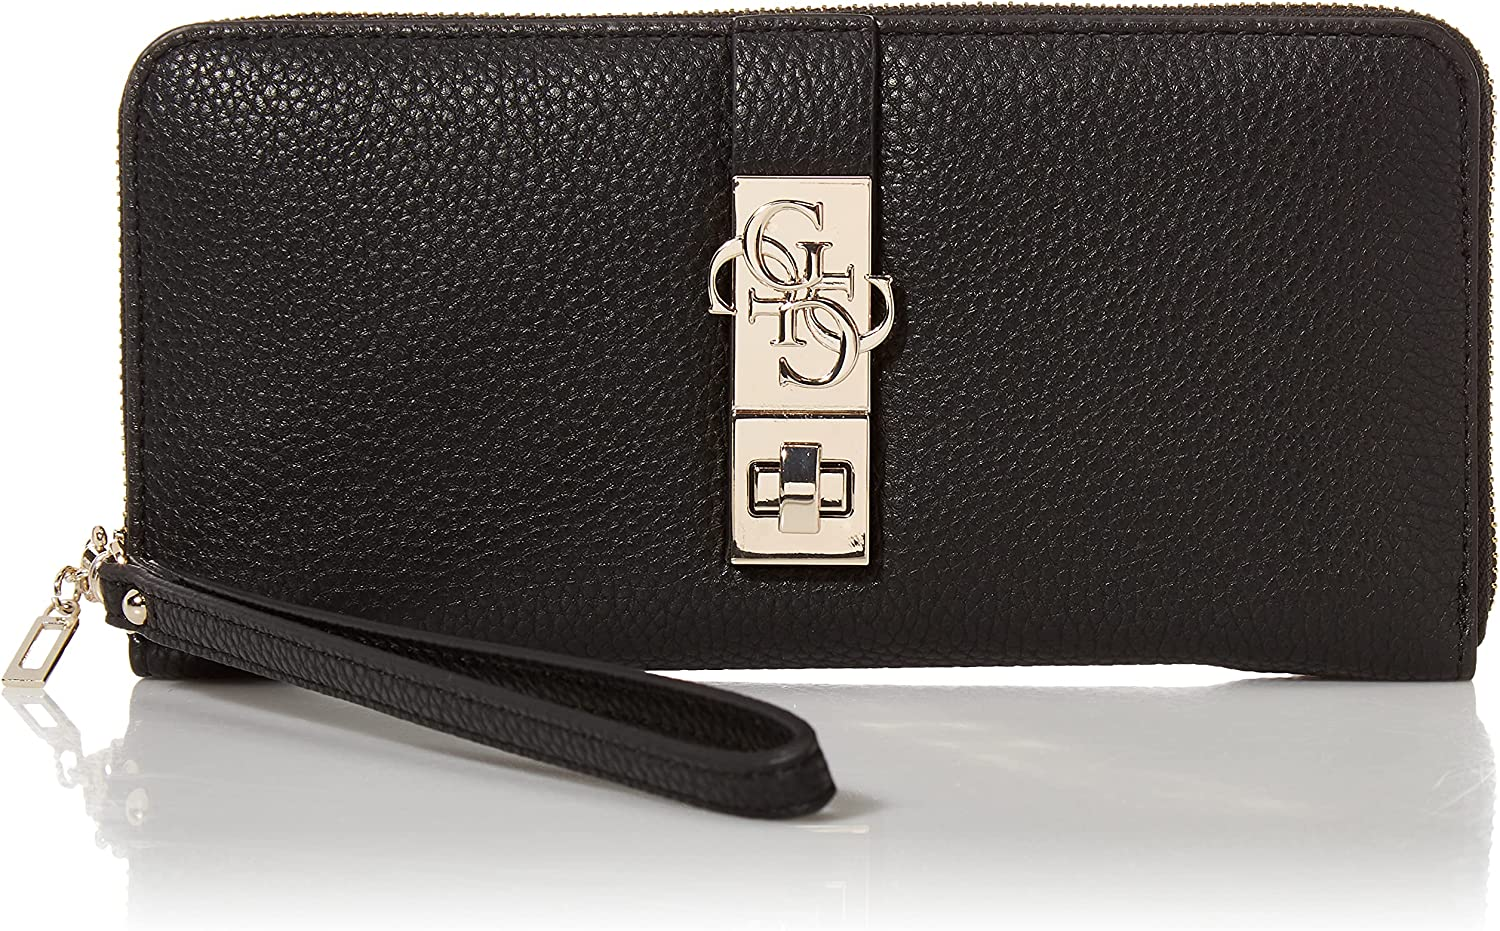 GUESS Women's Super beauty product restock quality top Ranking TOP11 Albury Large Wallet Around Zip